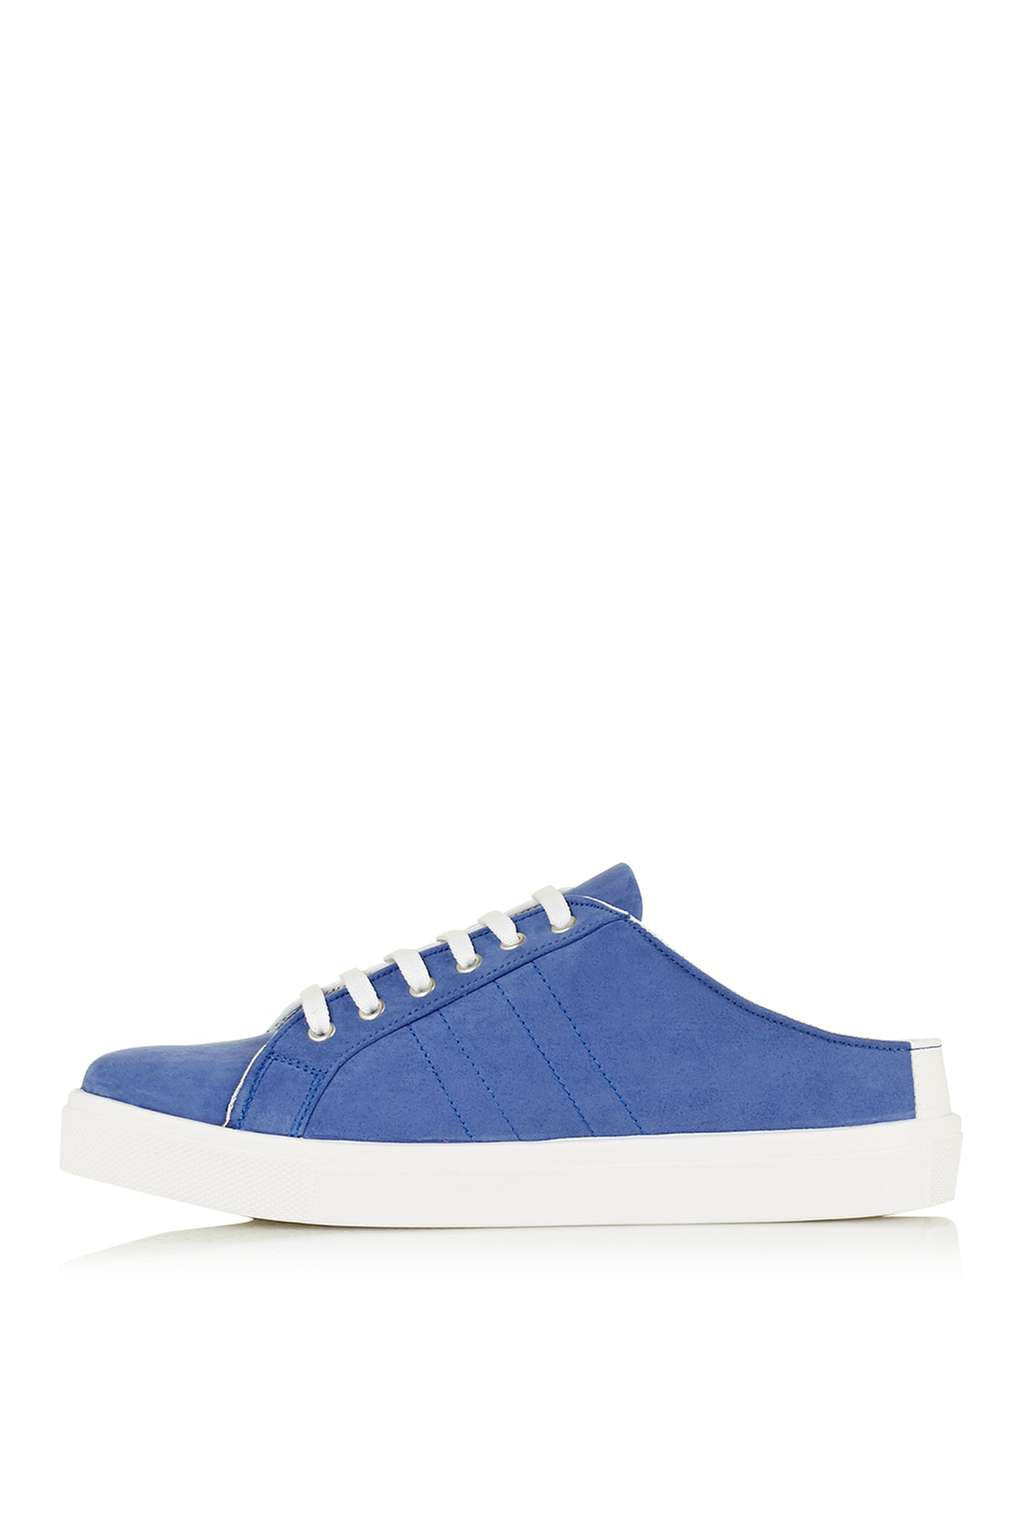 TopShop Carolina Backless Trainer